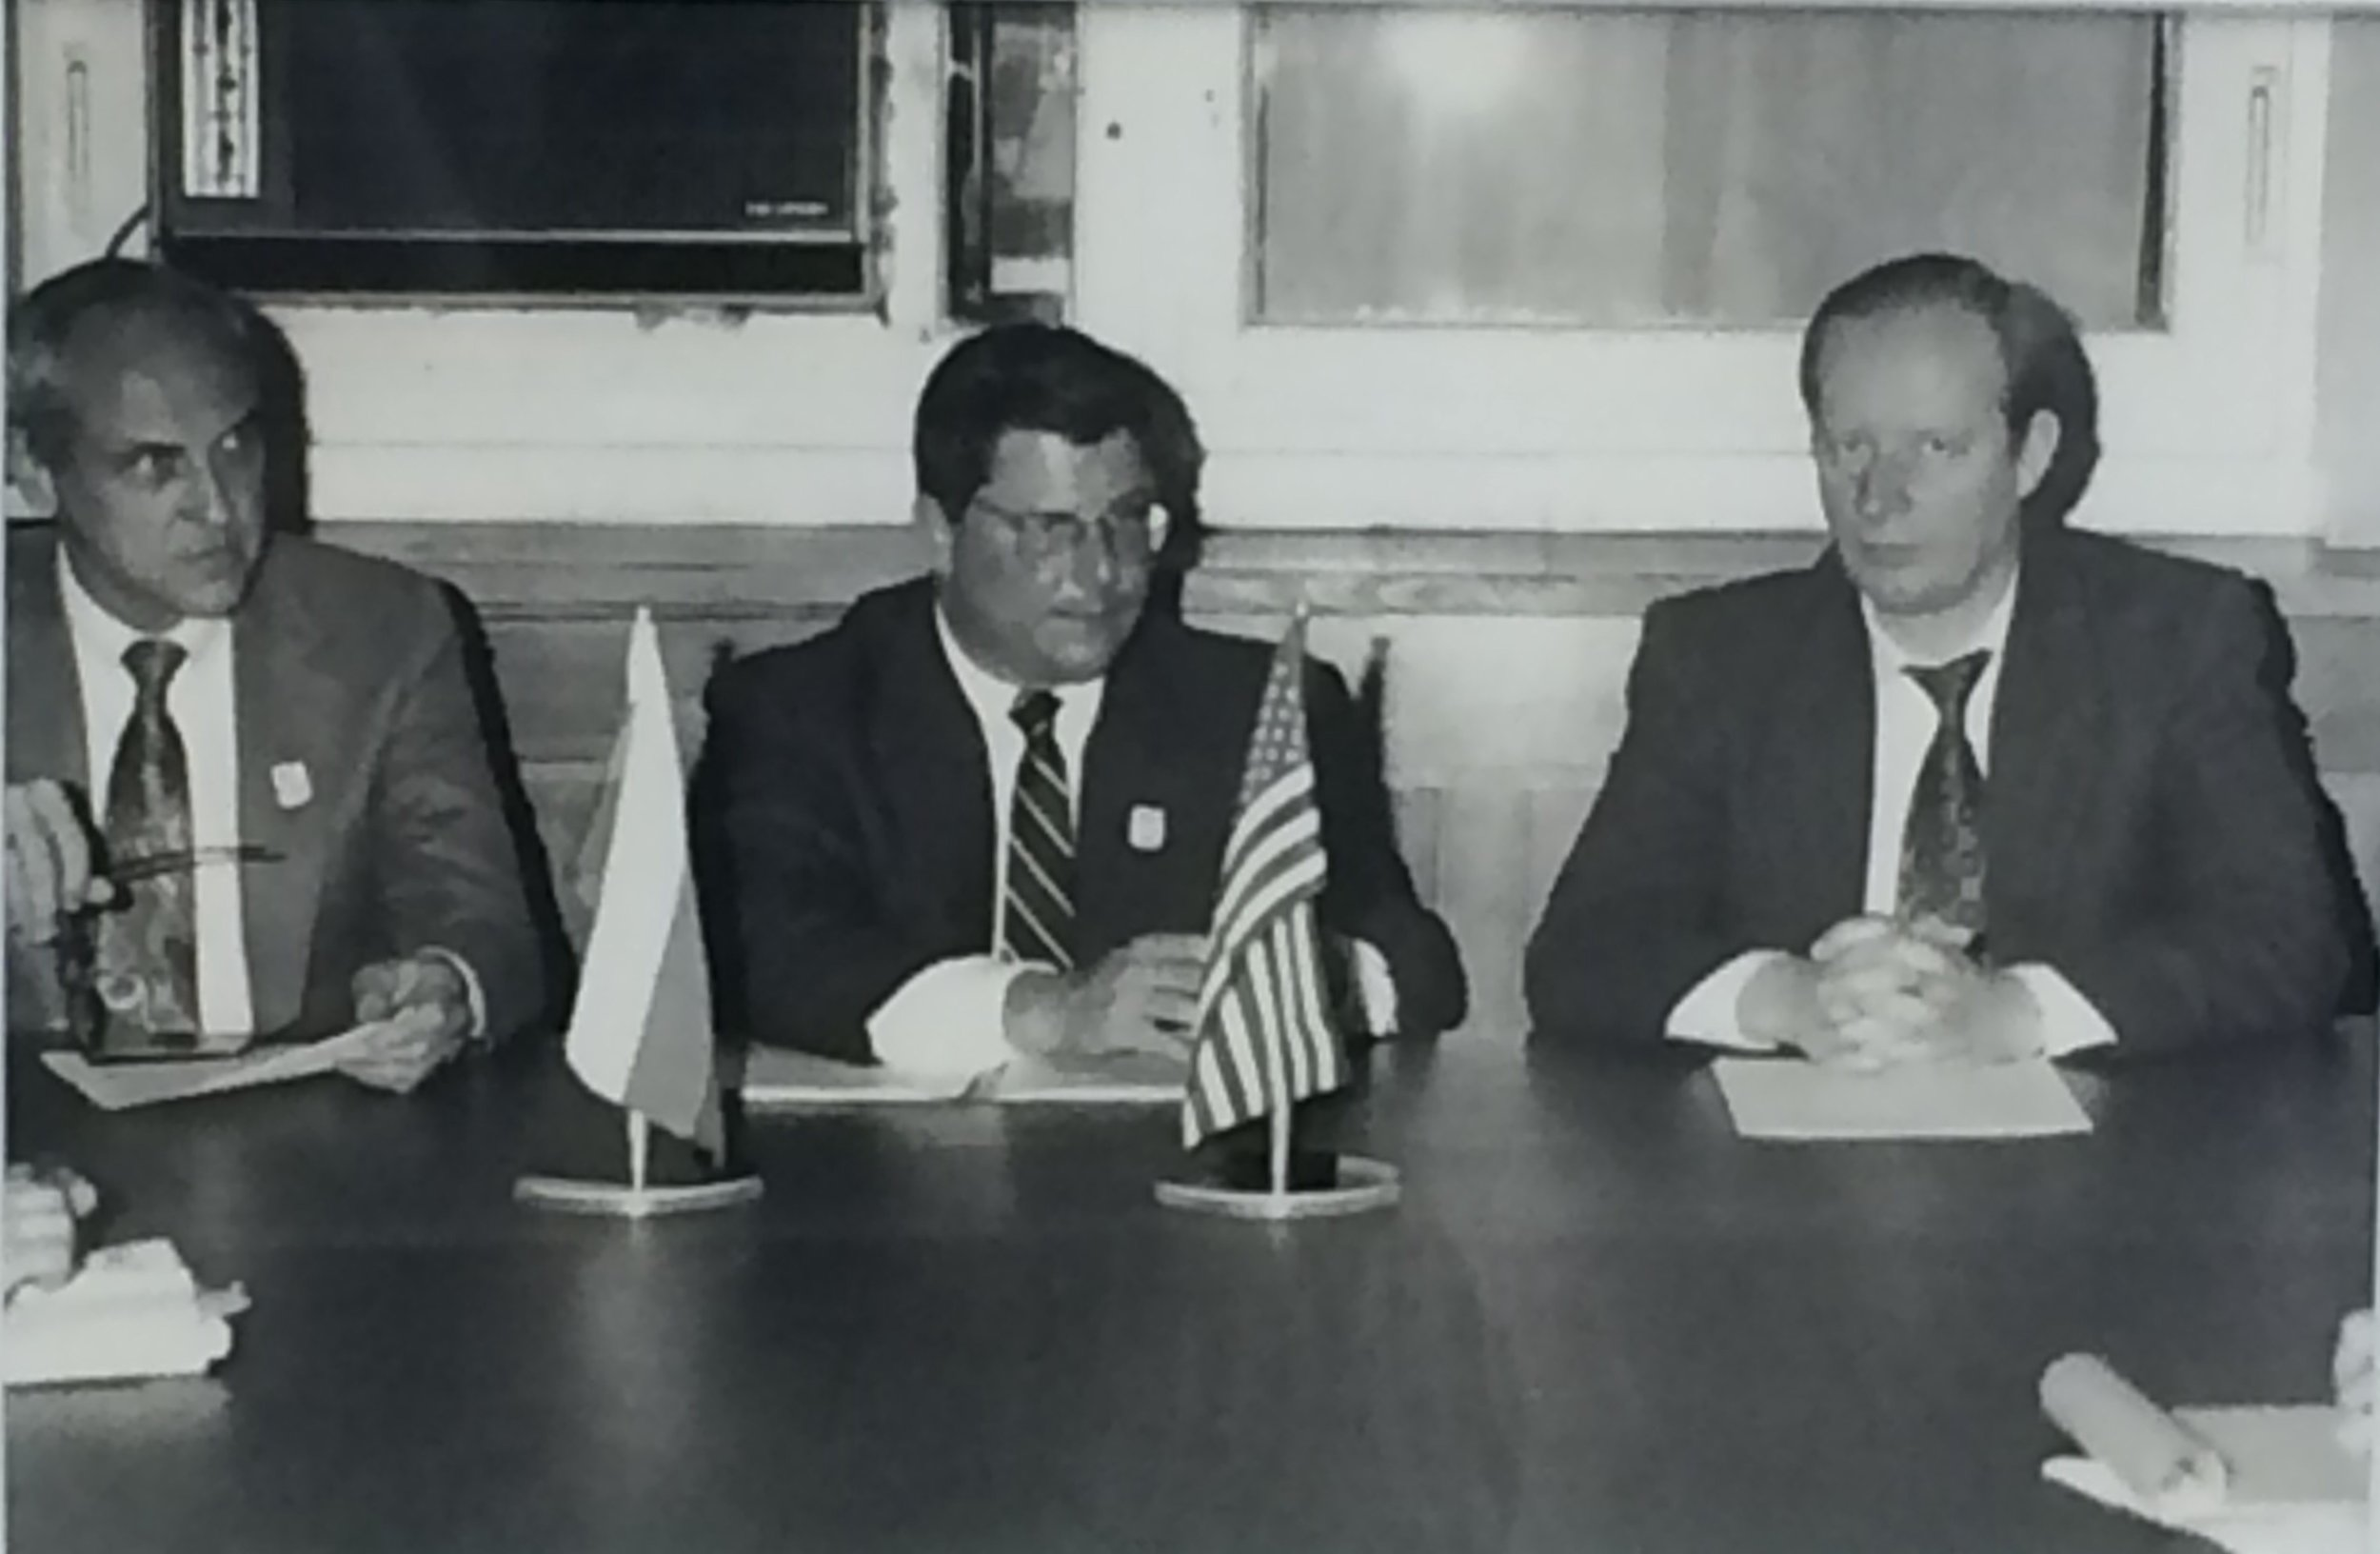 Stanford economist Charles McLure (right) joined Dan Witt (center) and Russian Deputy Finance Minister Sergey Gorbachev (left) to sign the Memorandum of Understanding in Moscow in March 1993.